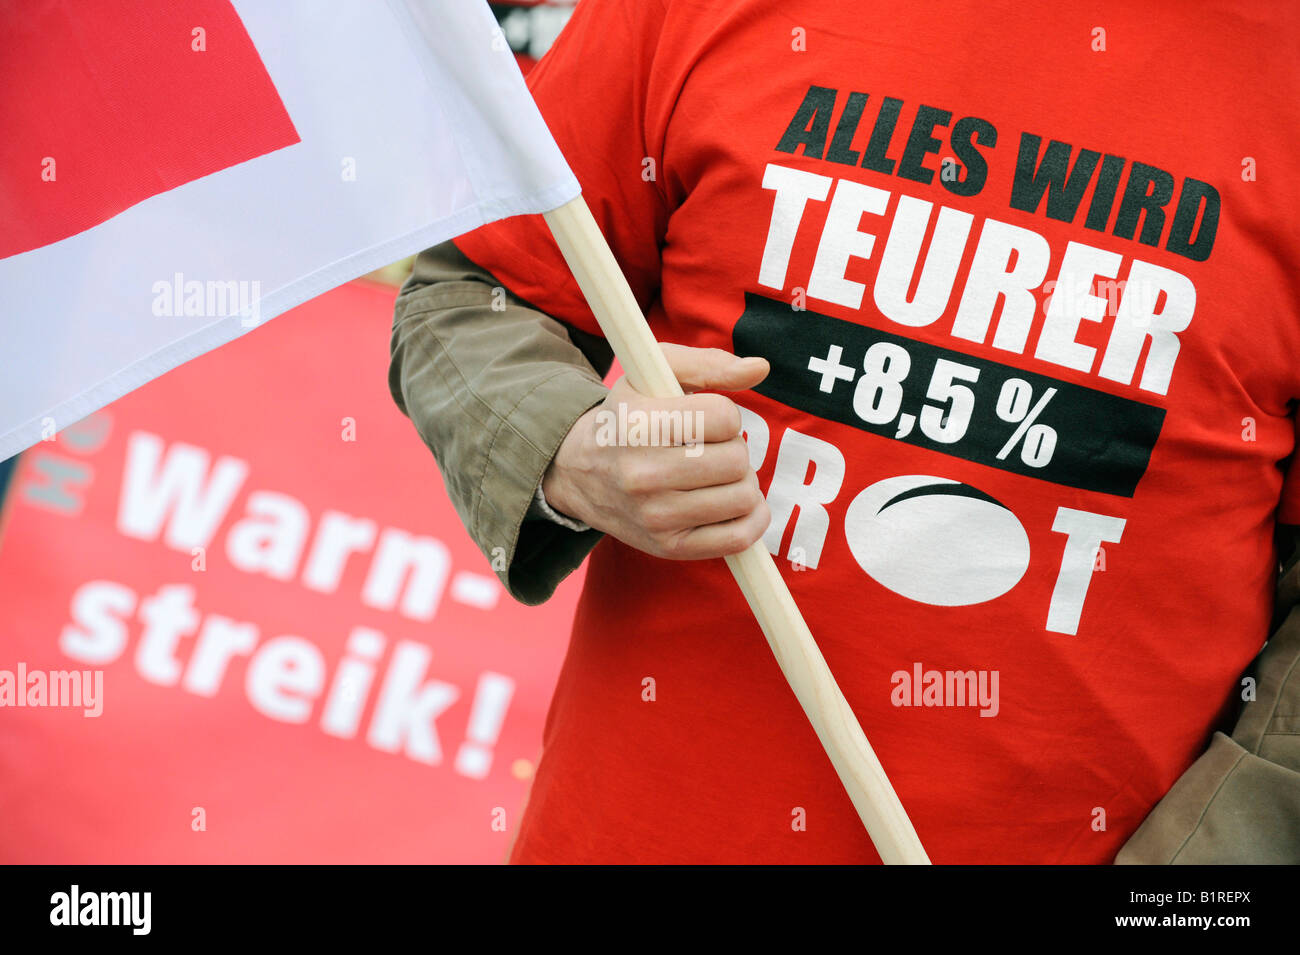 Protest, demonstrator wearing a t-shirt reading Alles wird teurer +8, 5% Brot, everything is getting more expensive Stock Photo